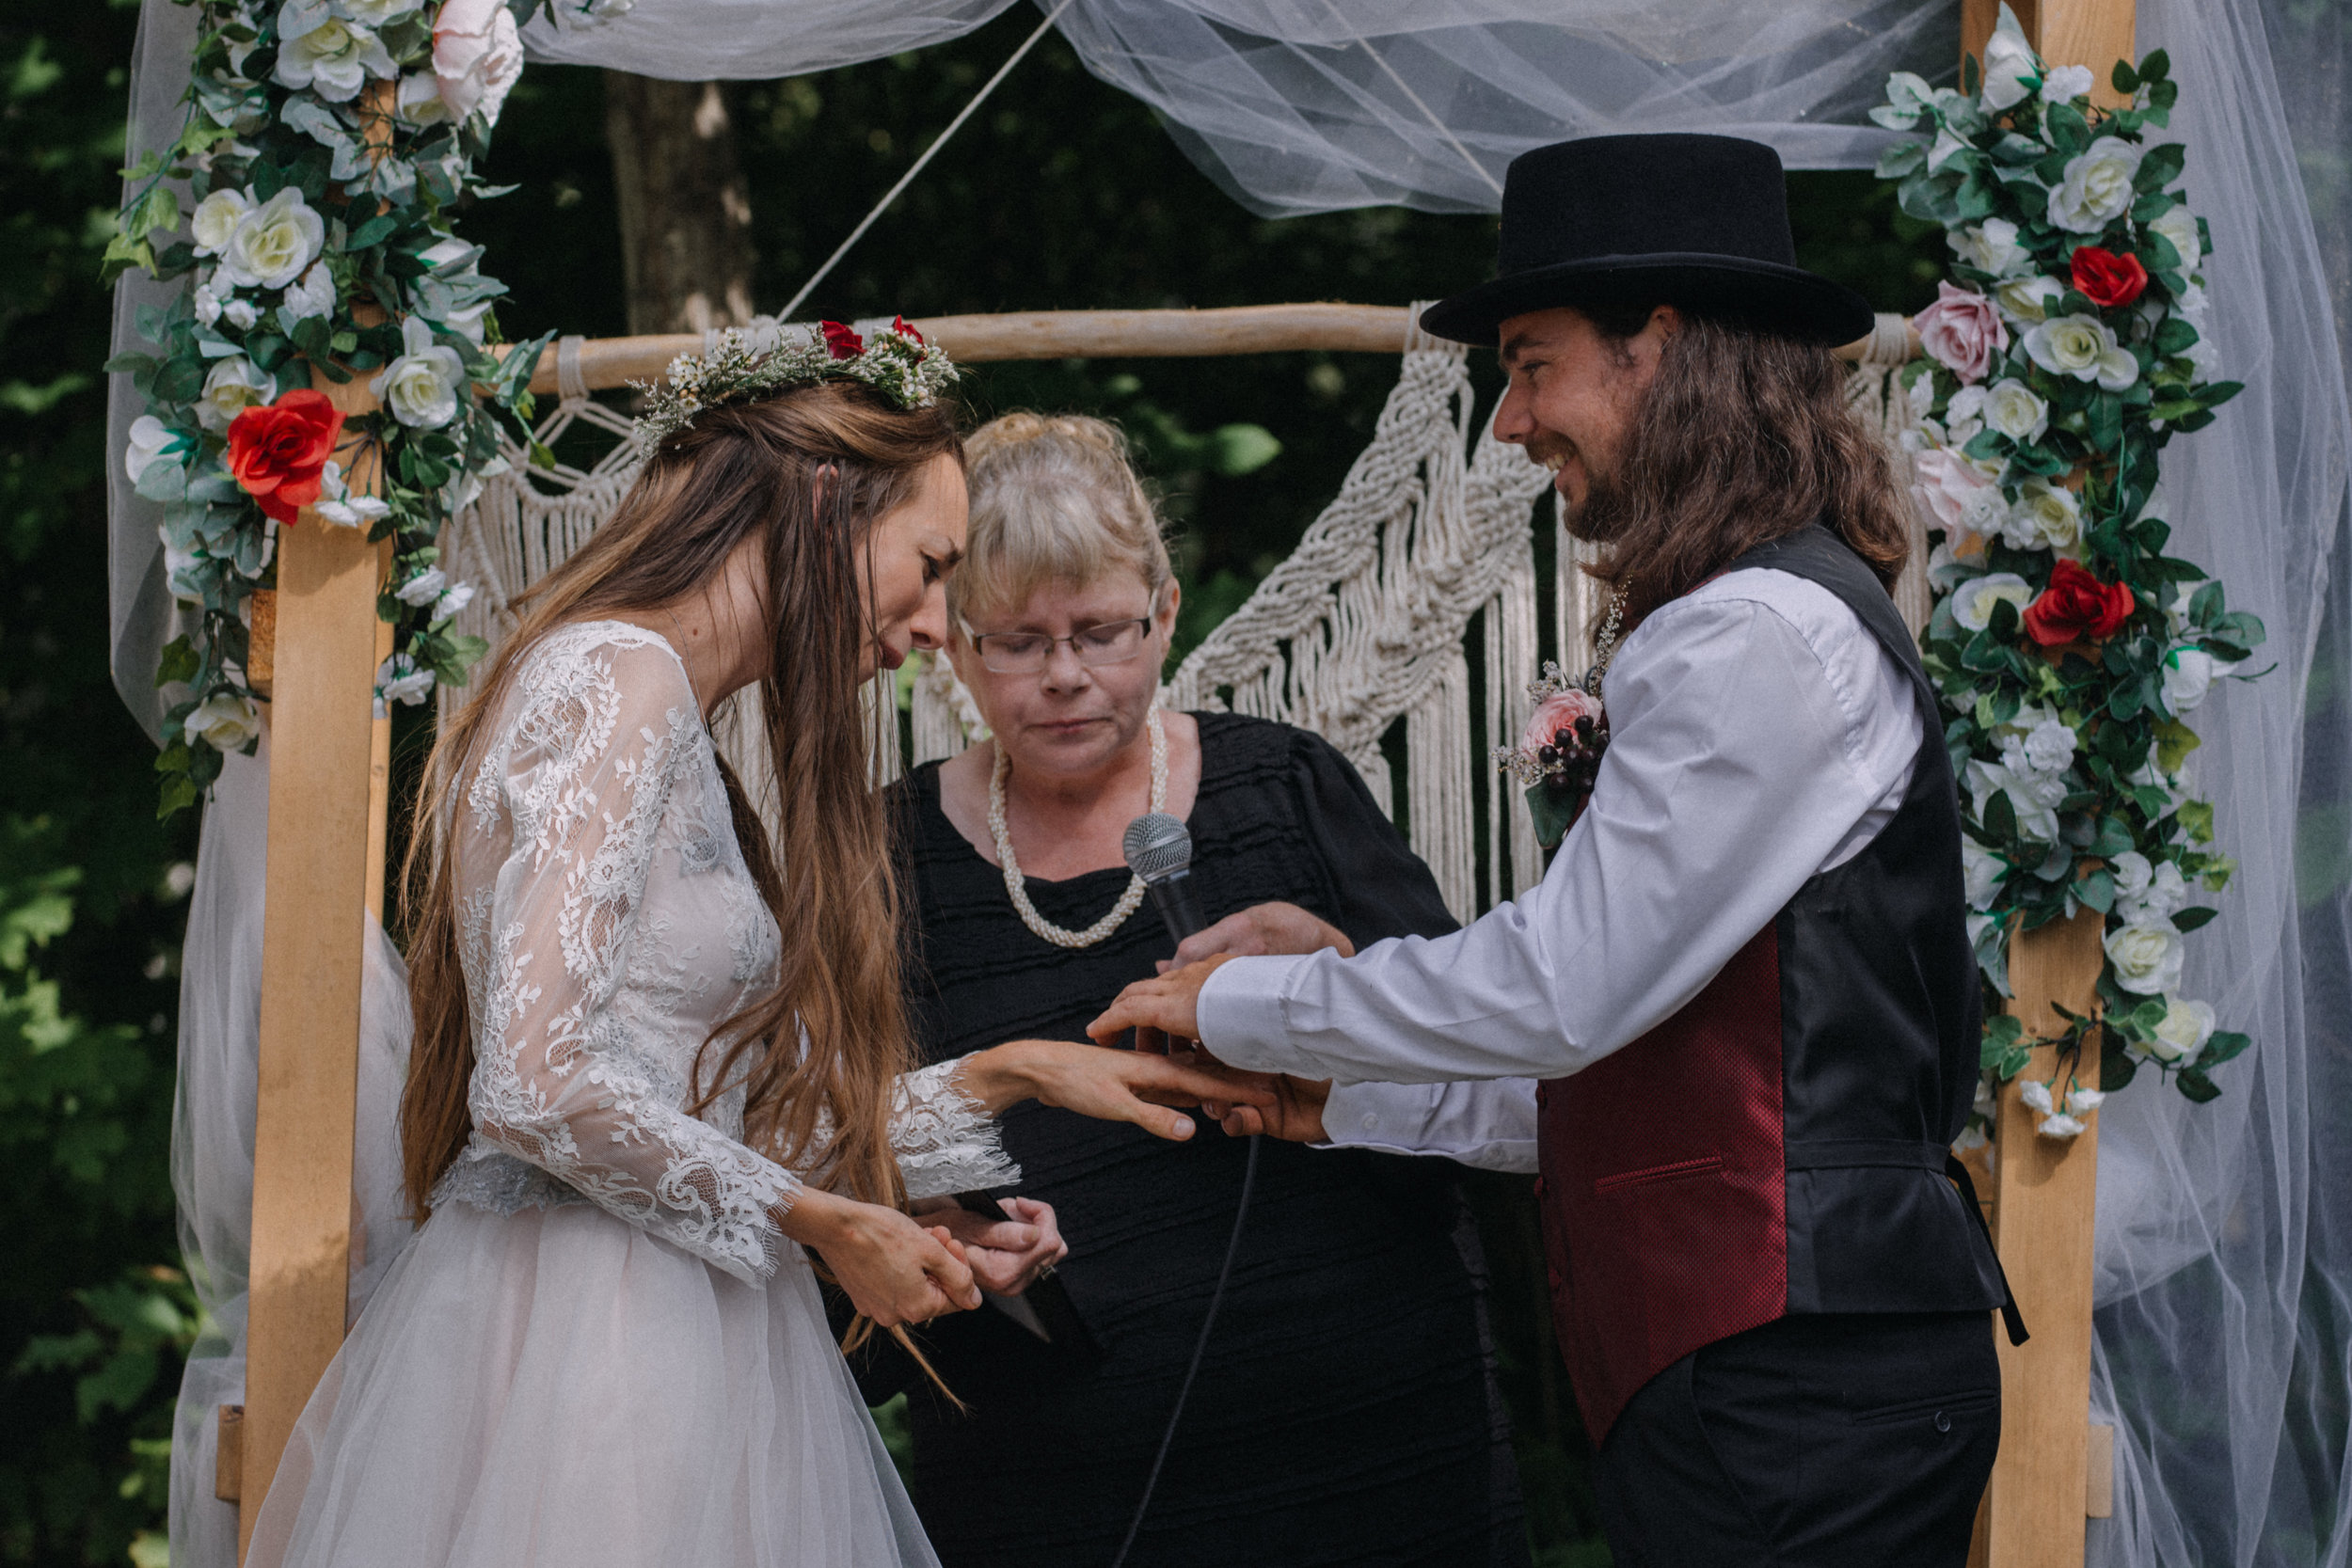 ottawa_wedding_photographer_gatineau_photographe_mariage_documentary_candid_photojournalist_natural_raw_boho_wedding_backyard (19).JPG